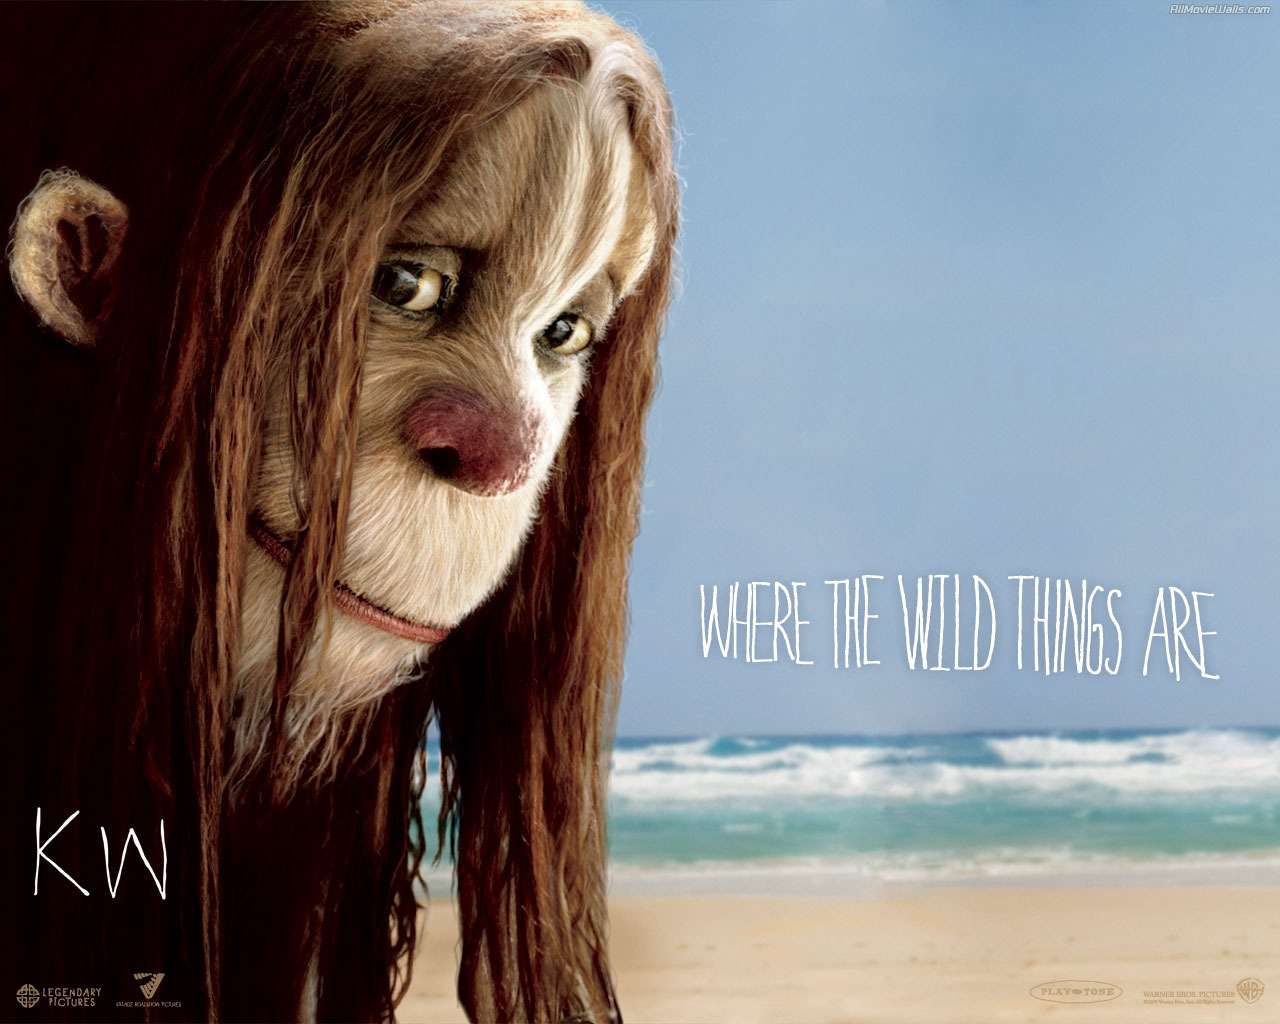 where the wild things are movies wallpaper 9133030